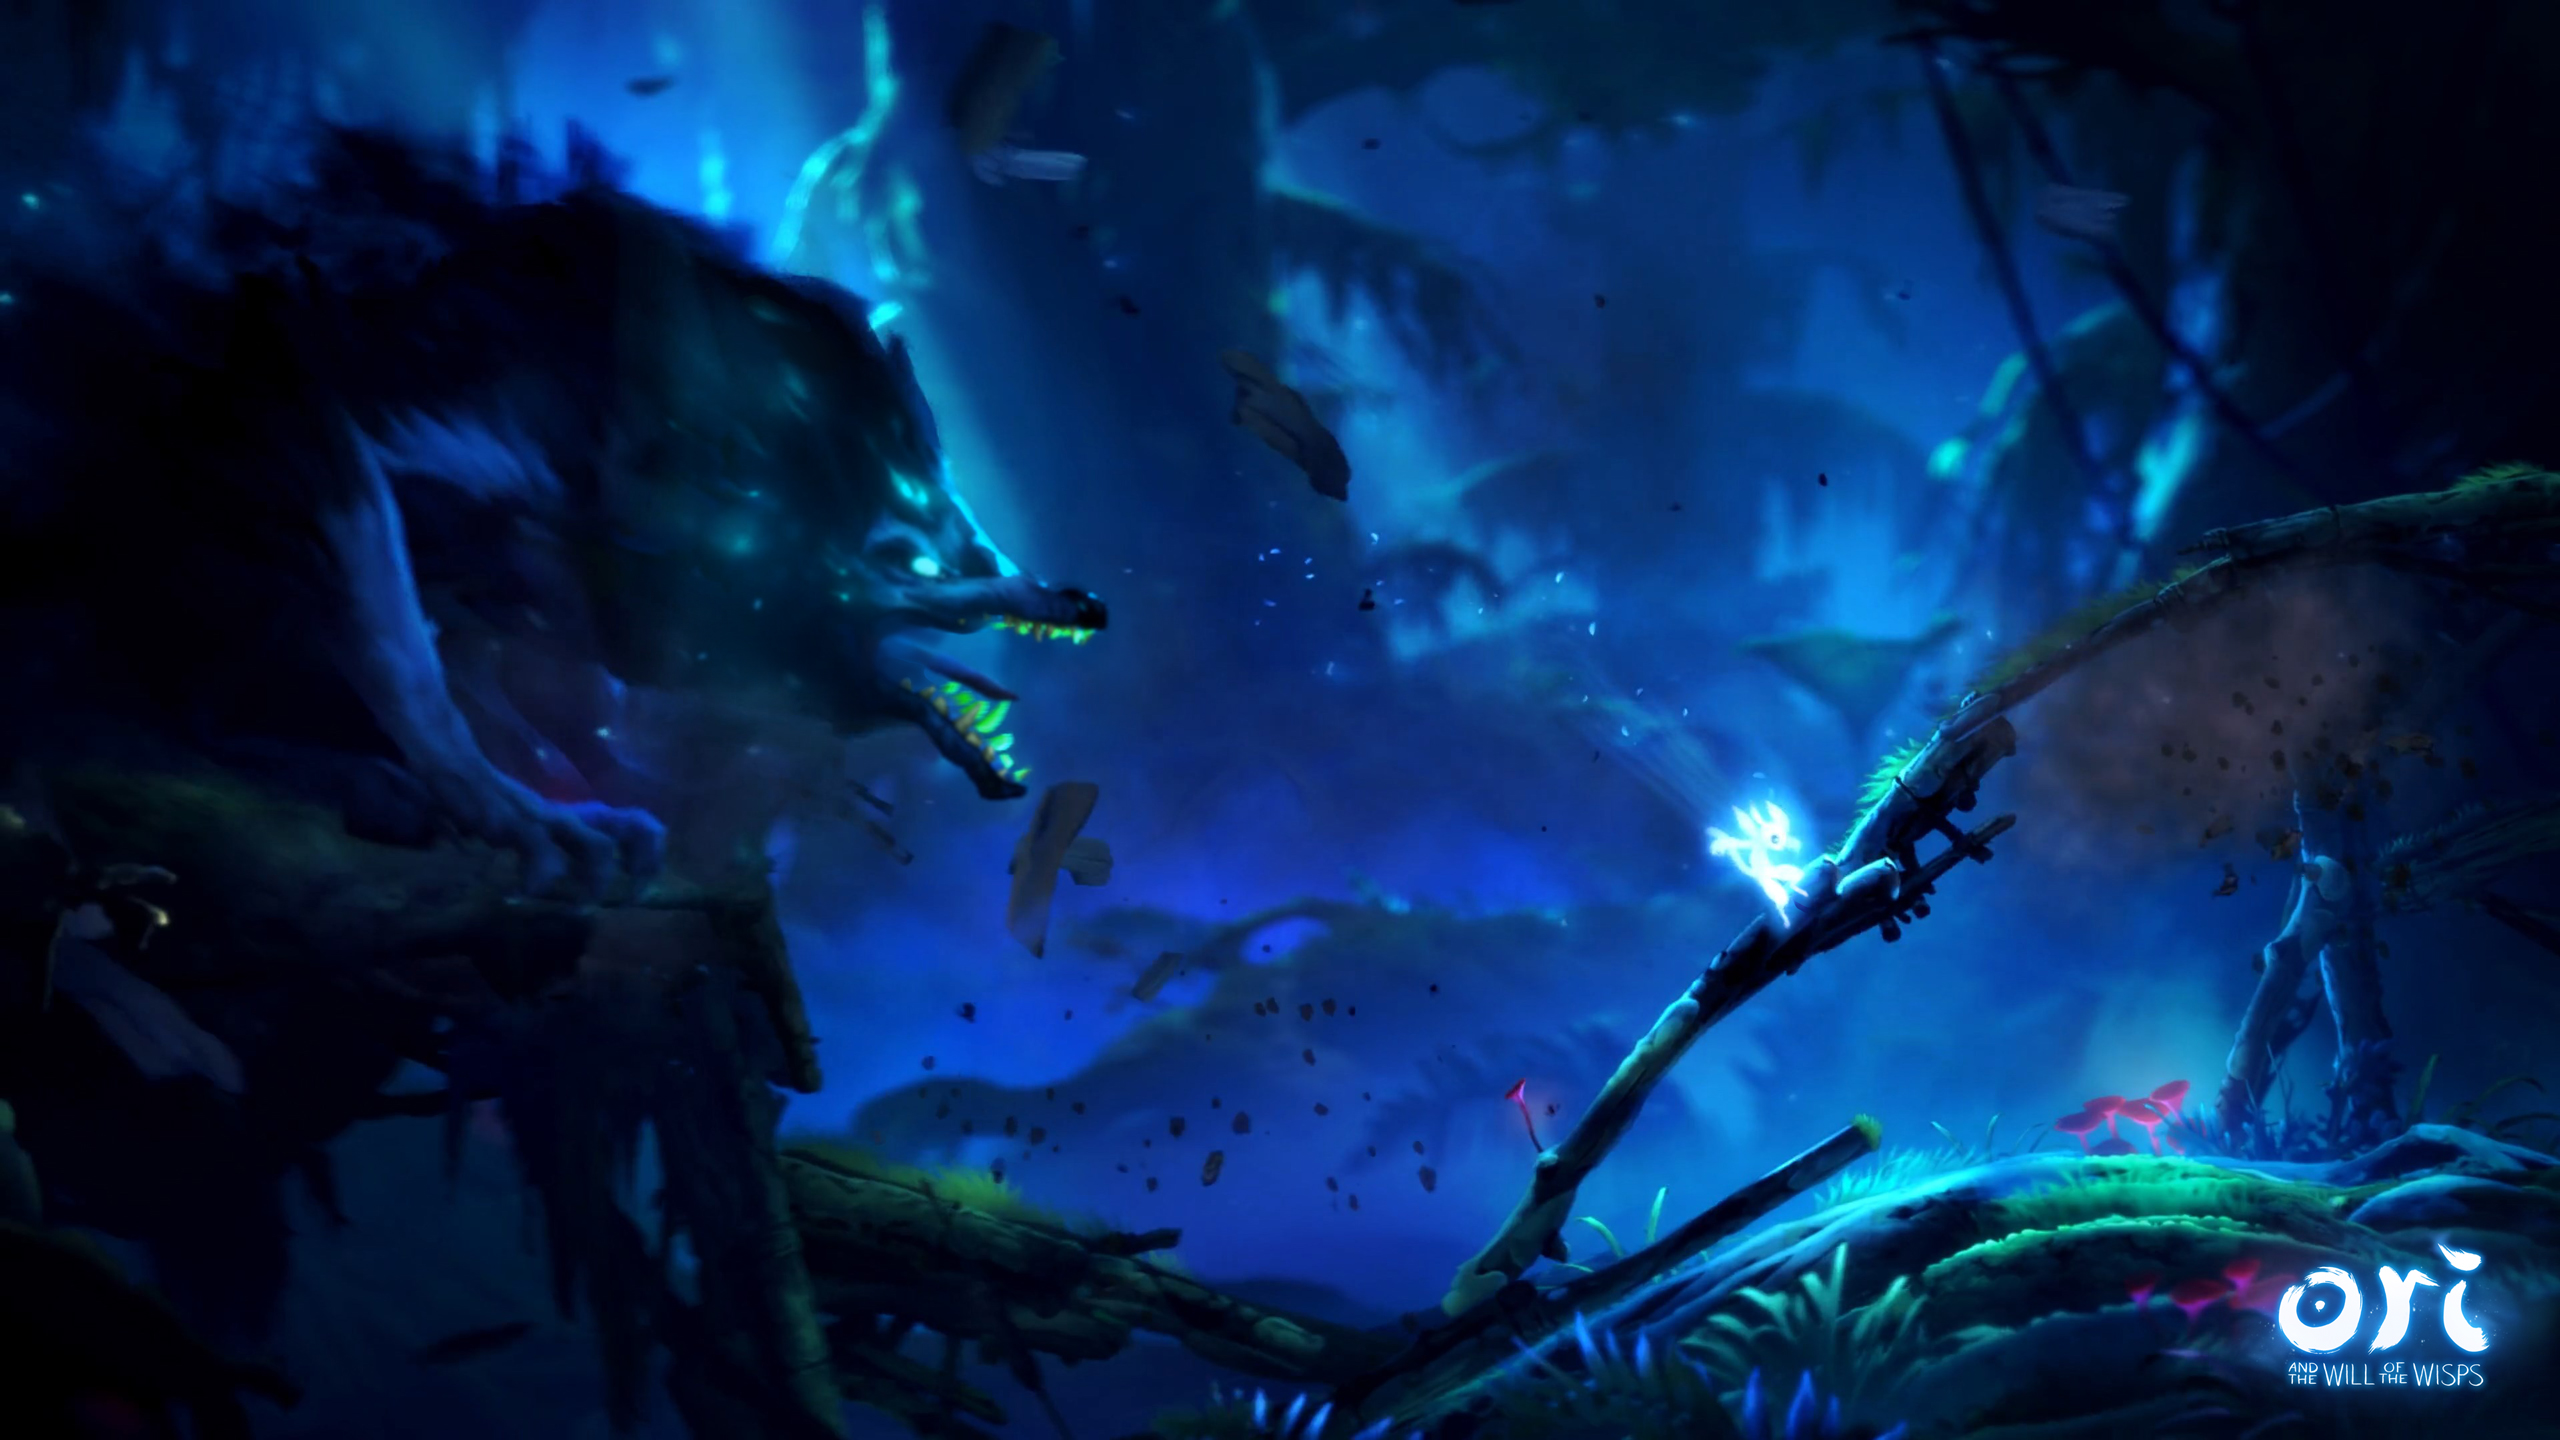 ori and the blind forest download ocean of games